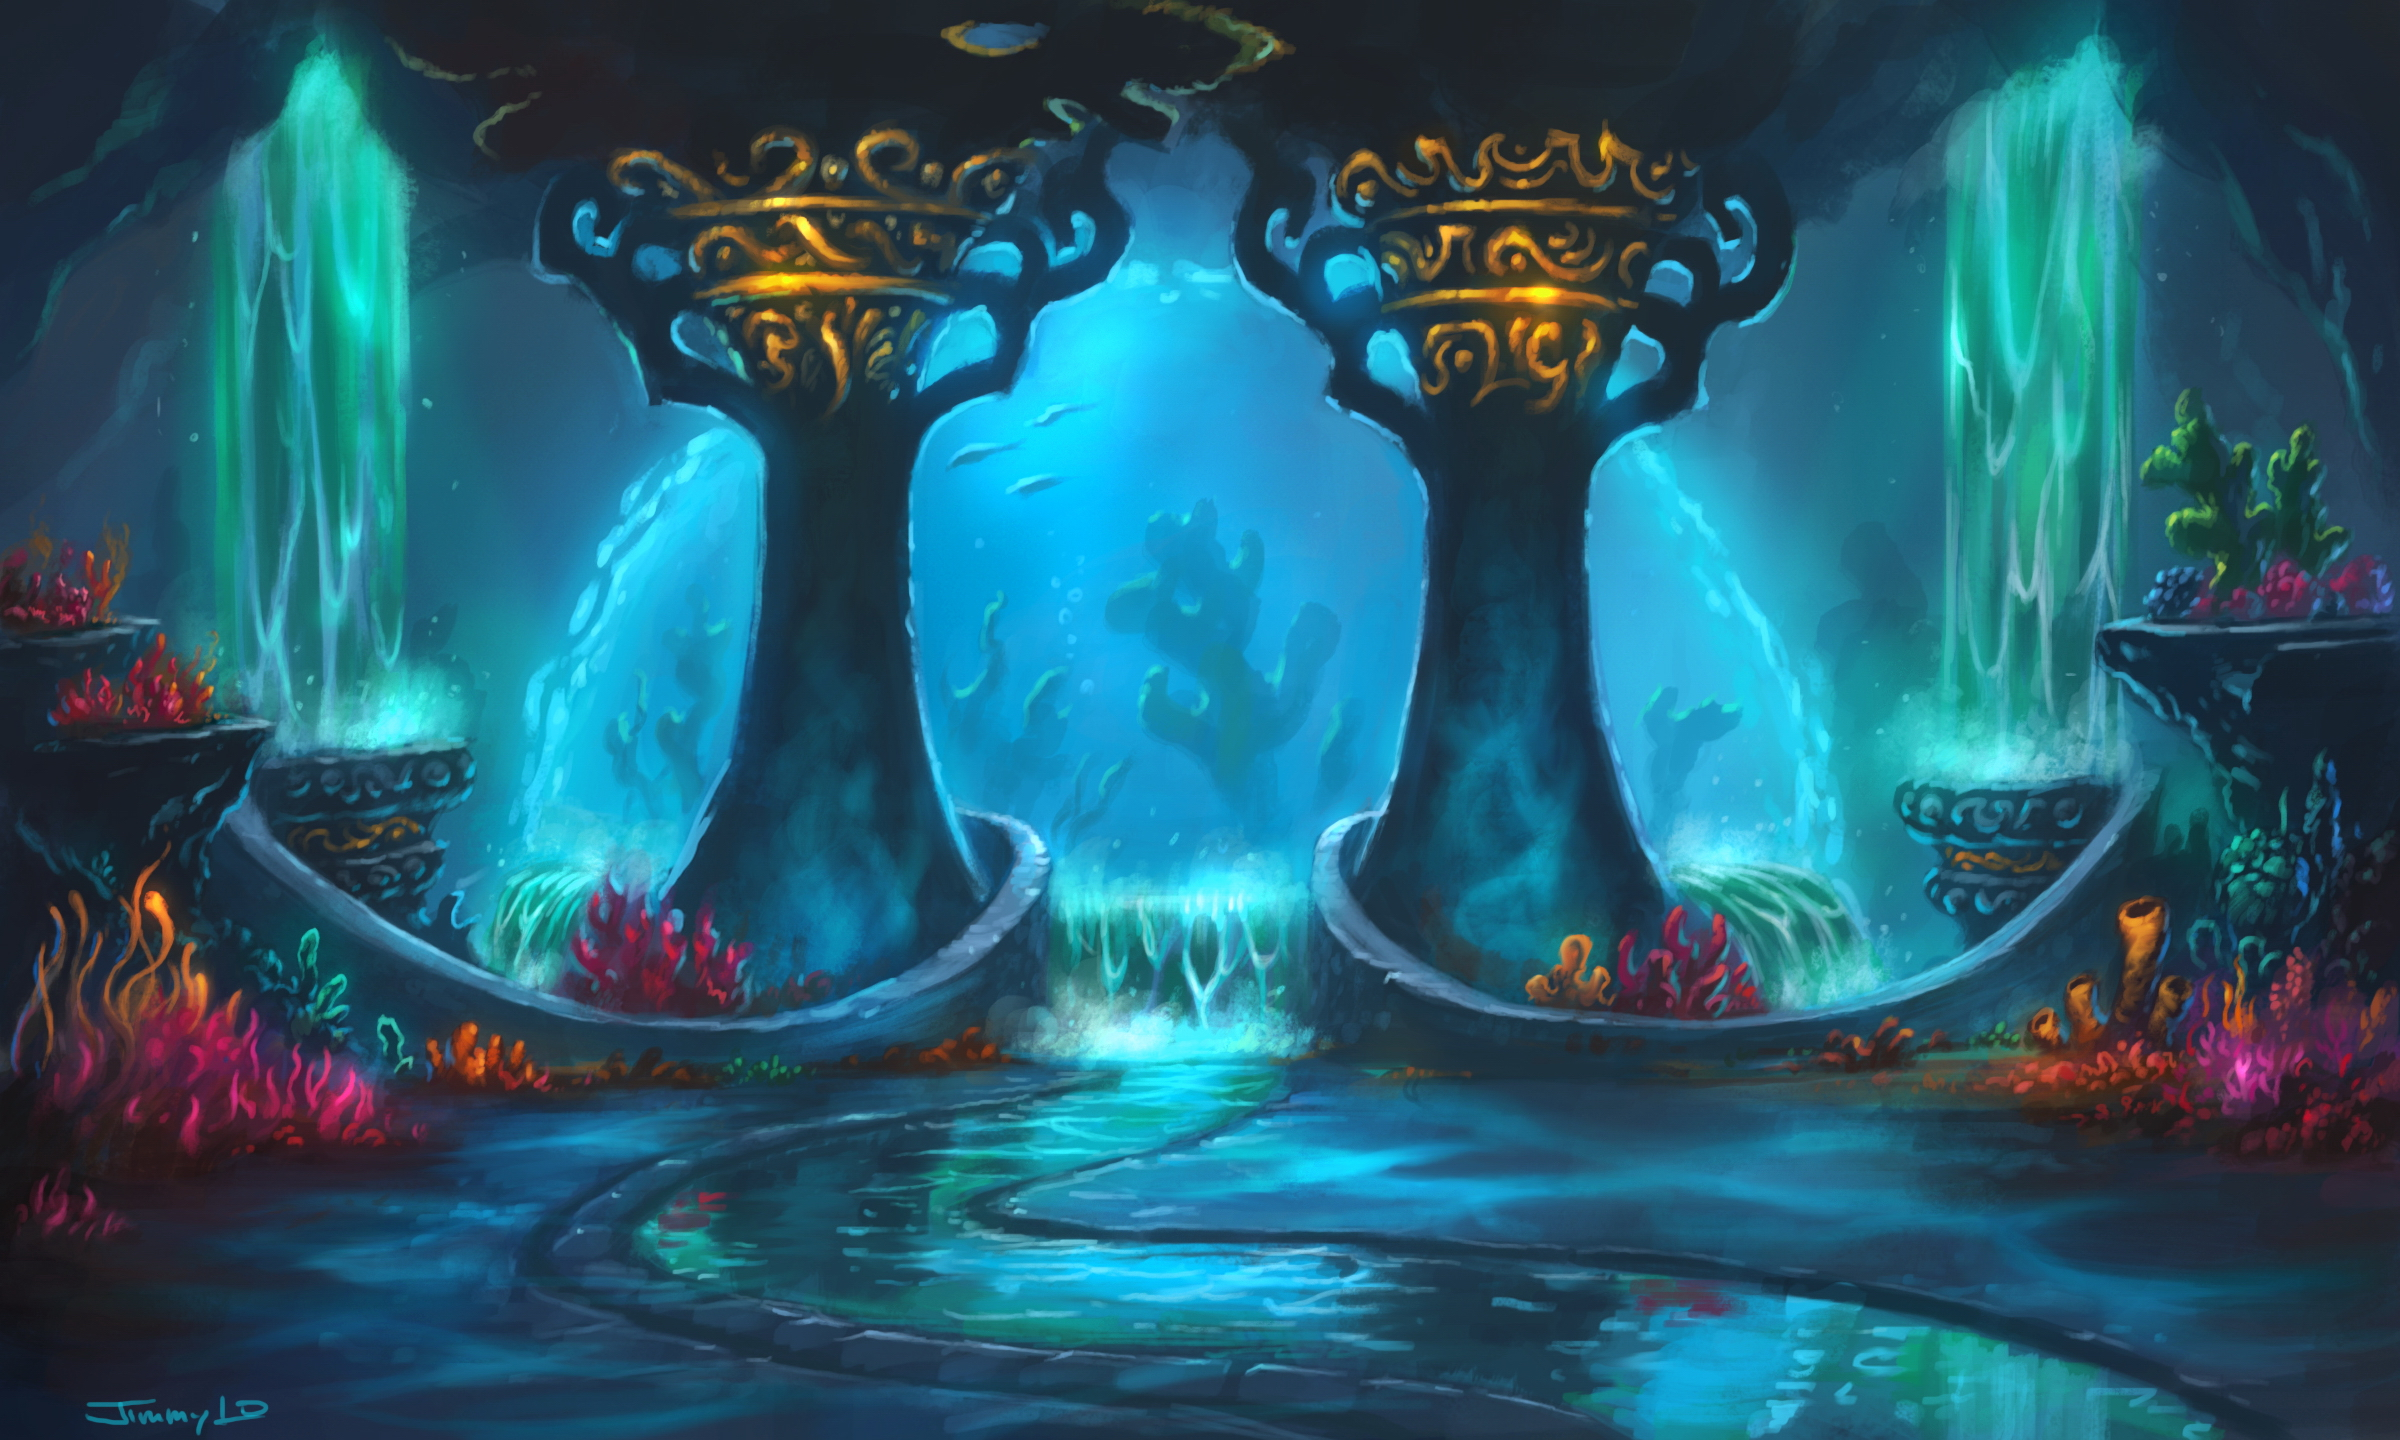 World of warcraft cataclysm rpg site - World of warcraft images ...